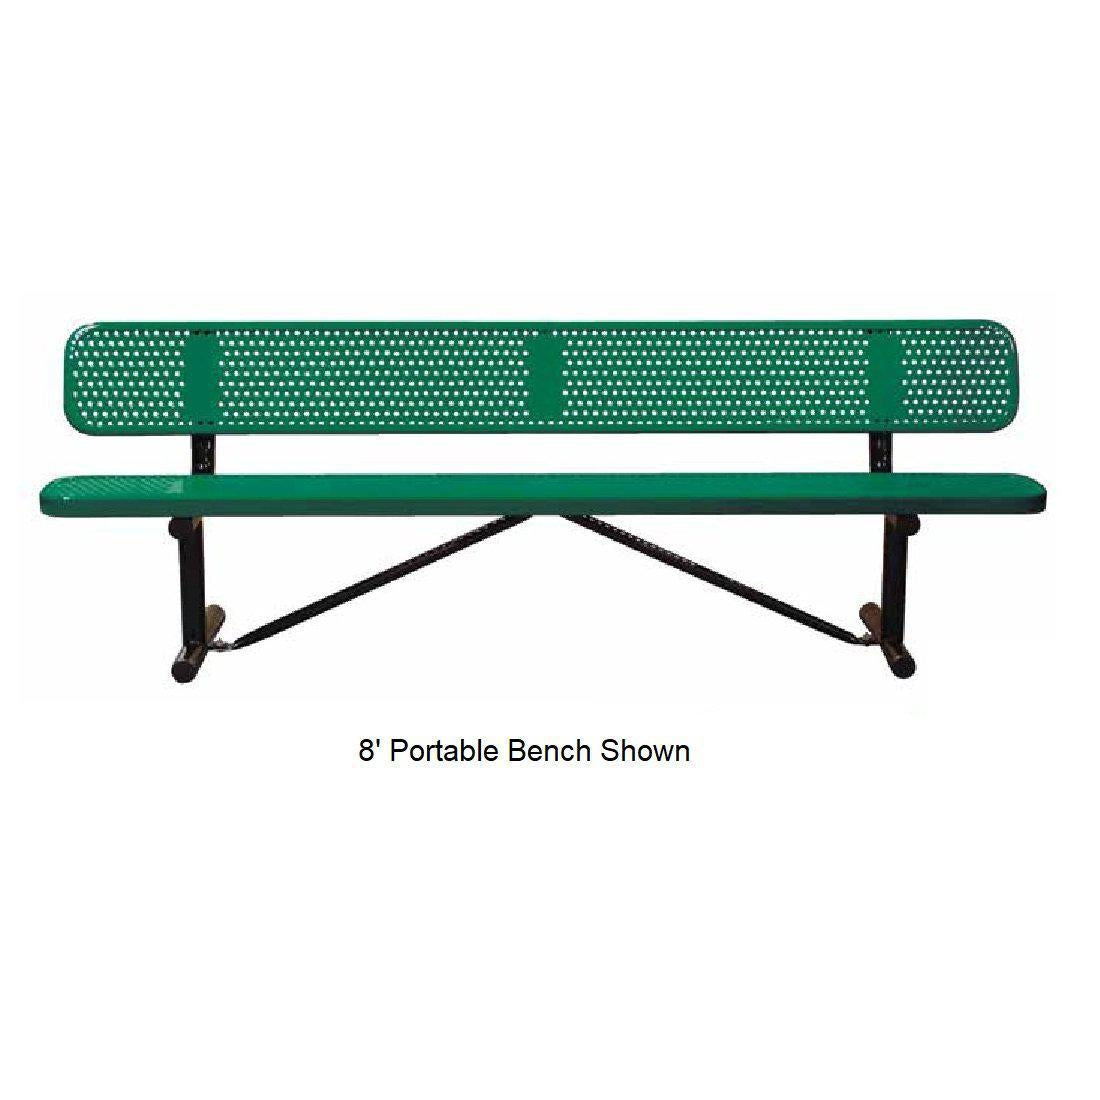 10' Standard Perforated Bench With Back, Portable